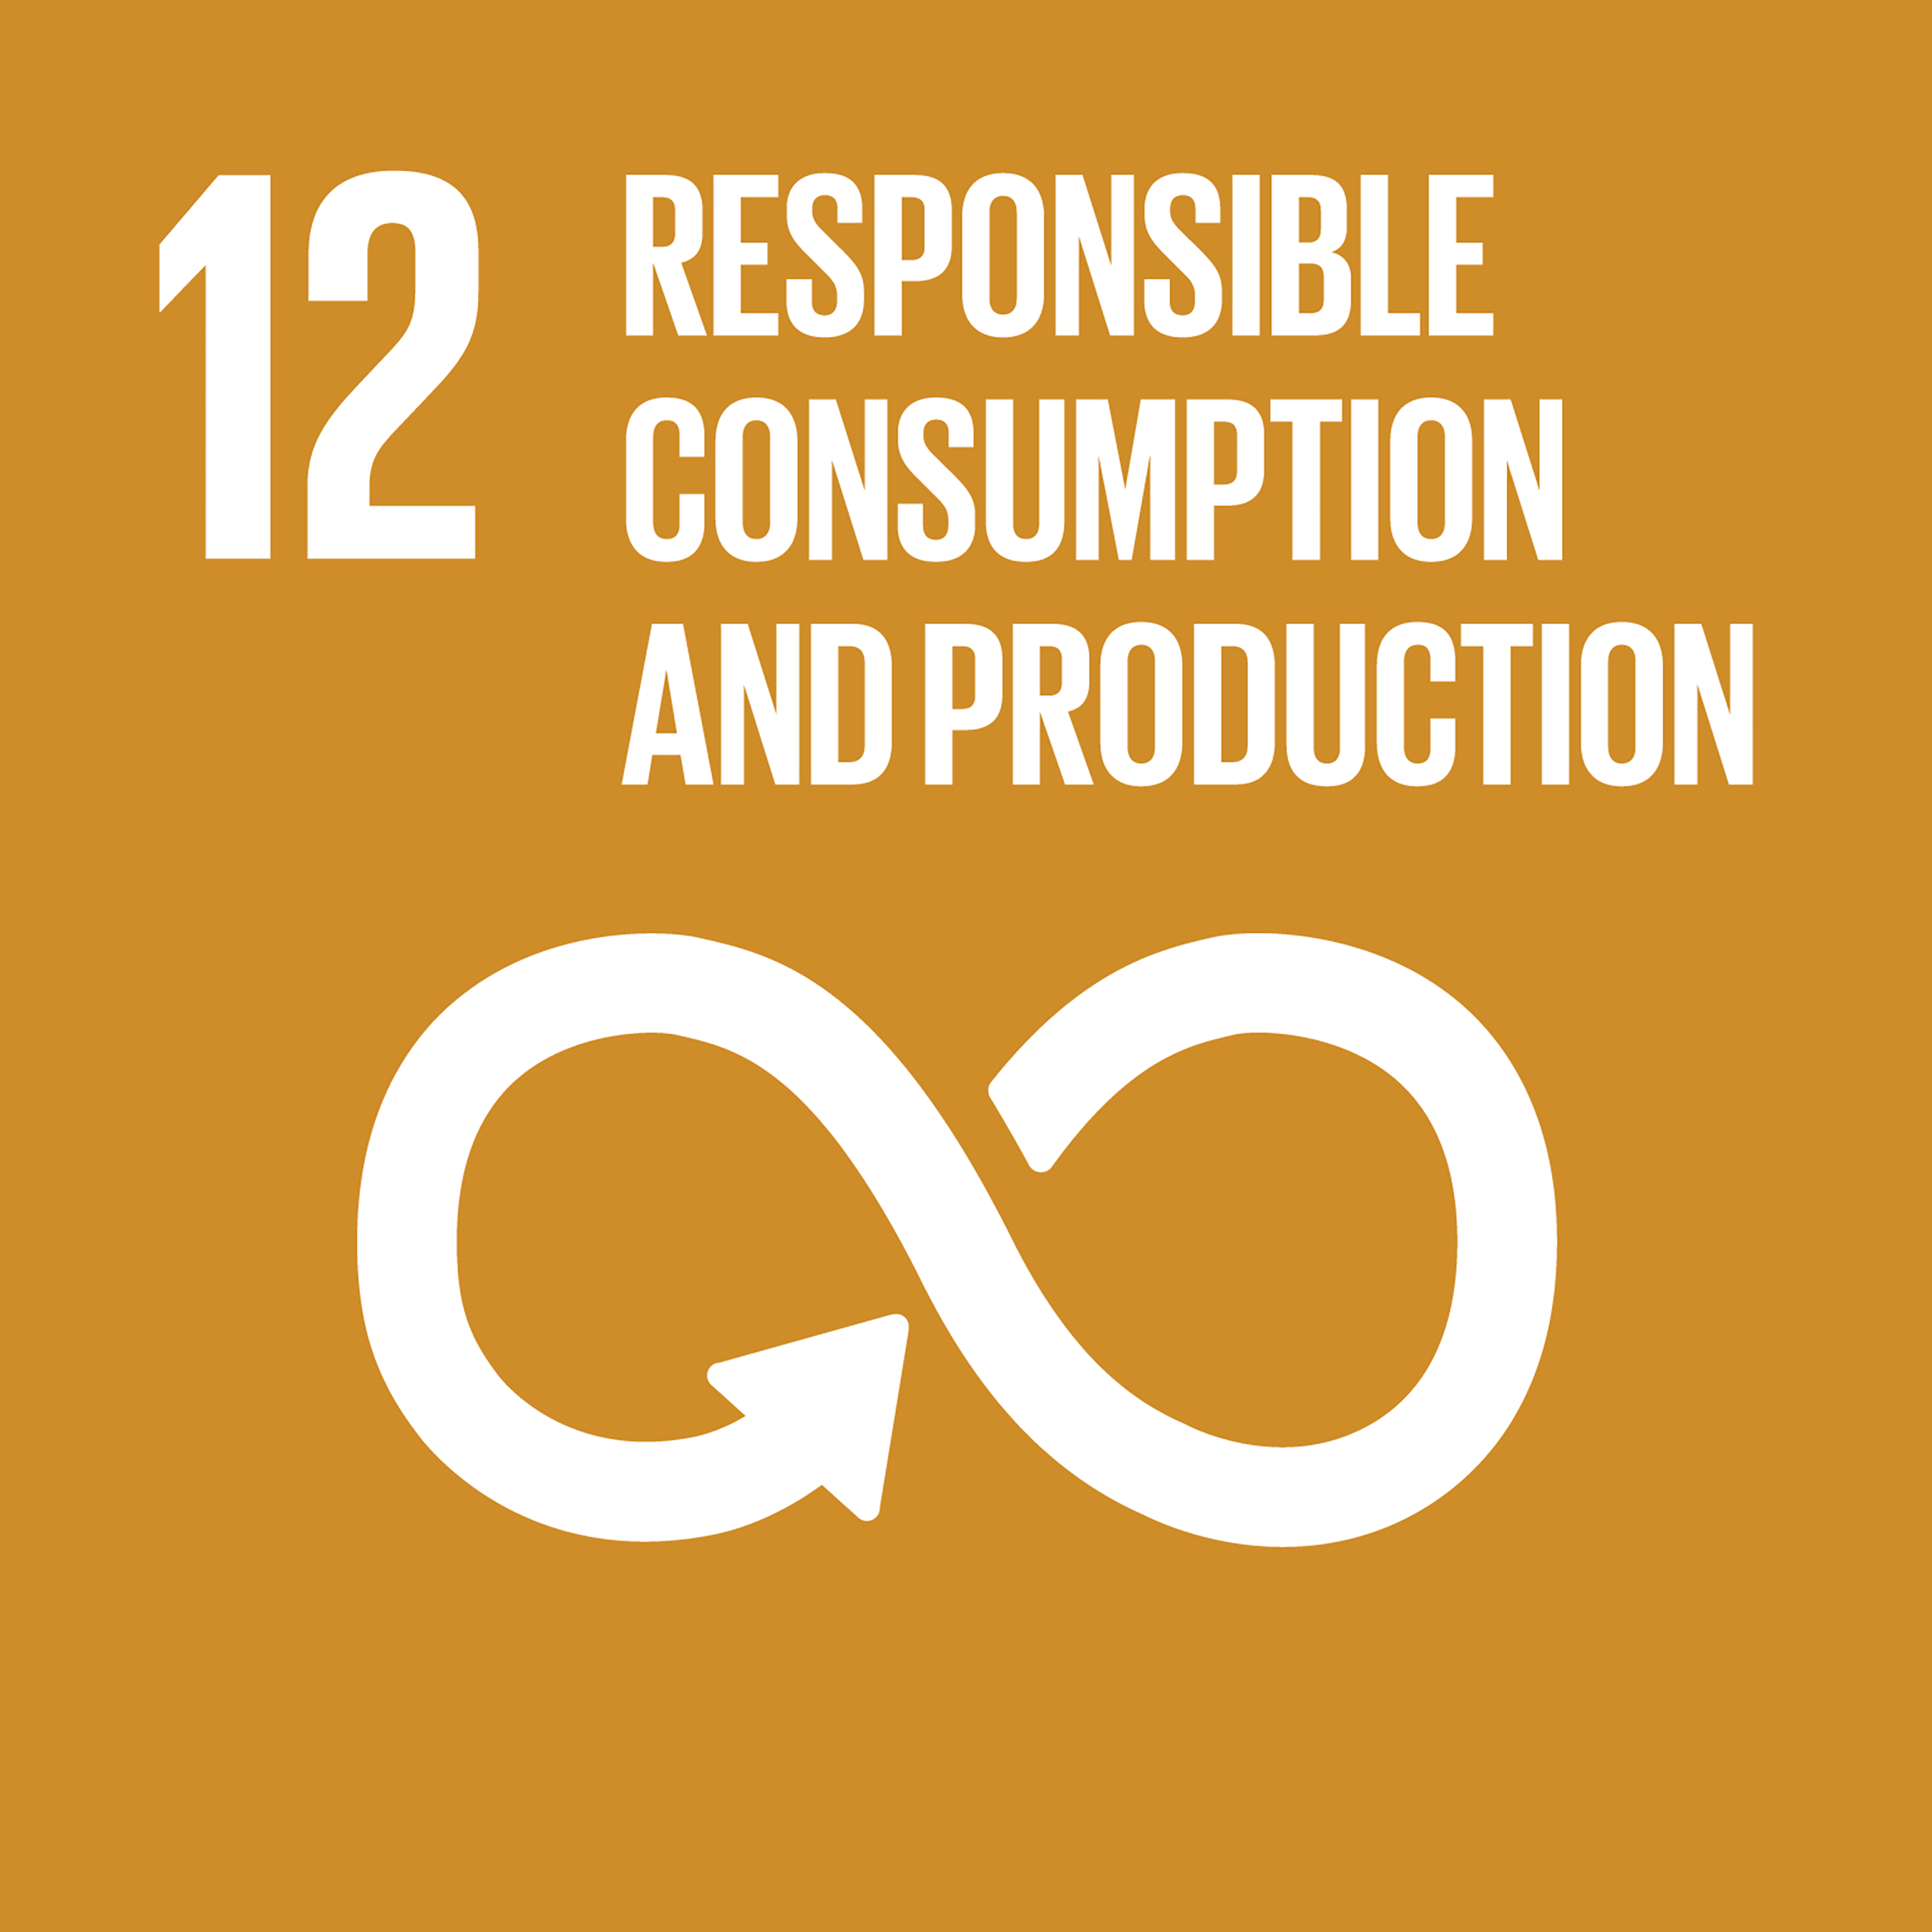 SDG-responsible-consumption-production